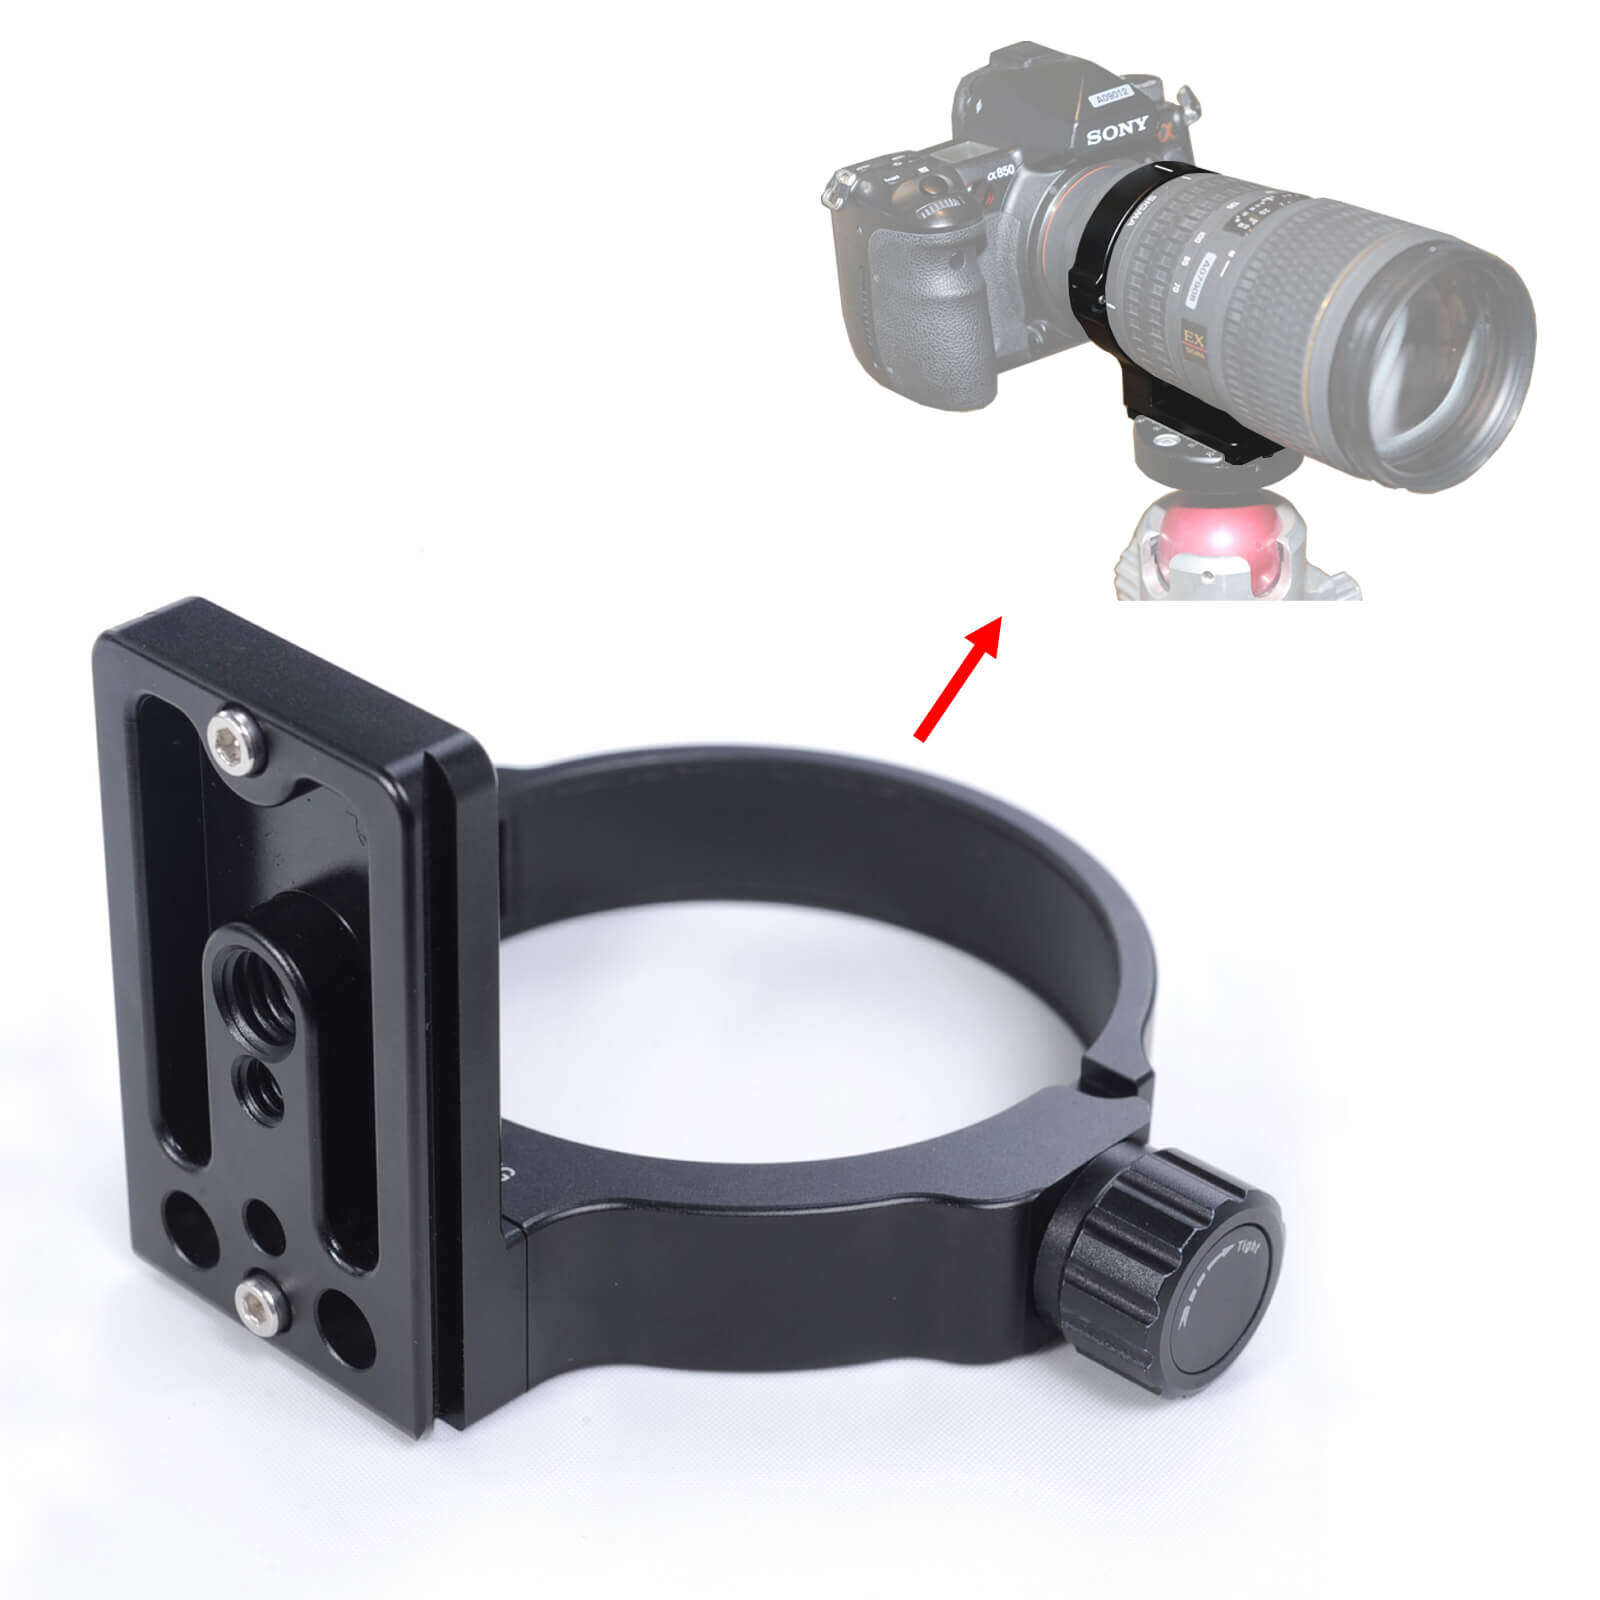 Lens Collar Support Tripod Mount Ring Can Replace TS-21 for Sigma AF MACRO APO 180mm F3.5 EX DG HSM, 180mm F2.8 EX DG OS HSM